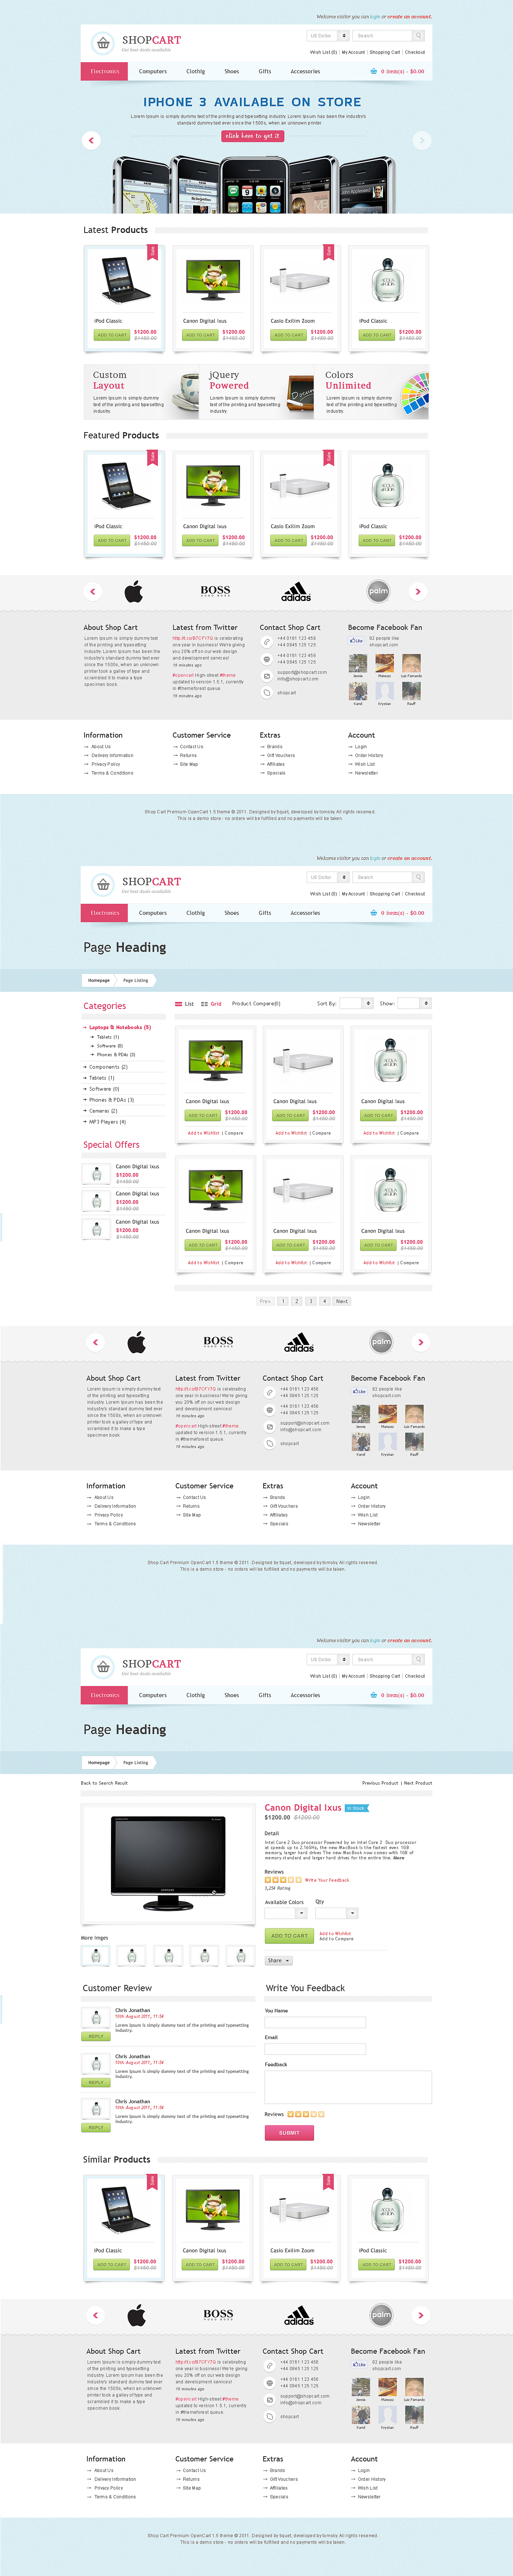 Shop Cart - Open Cart Theme by prkdeviant